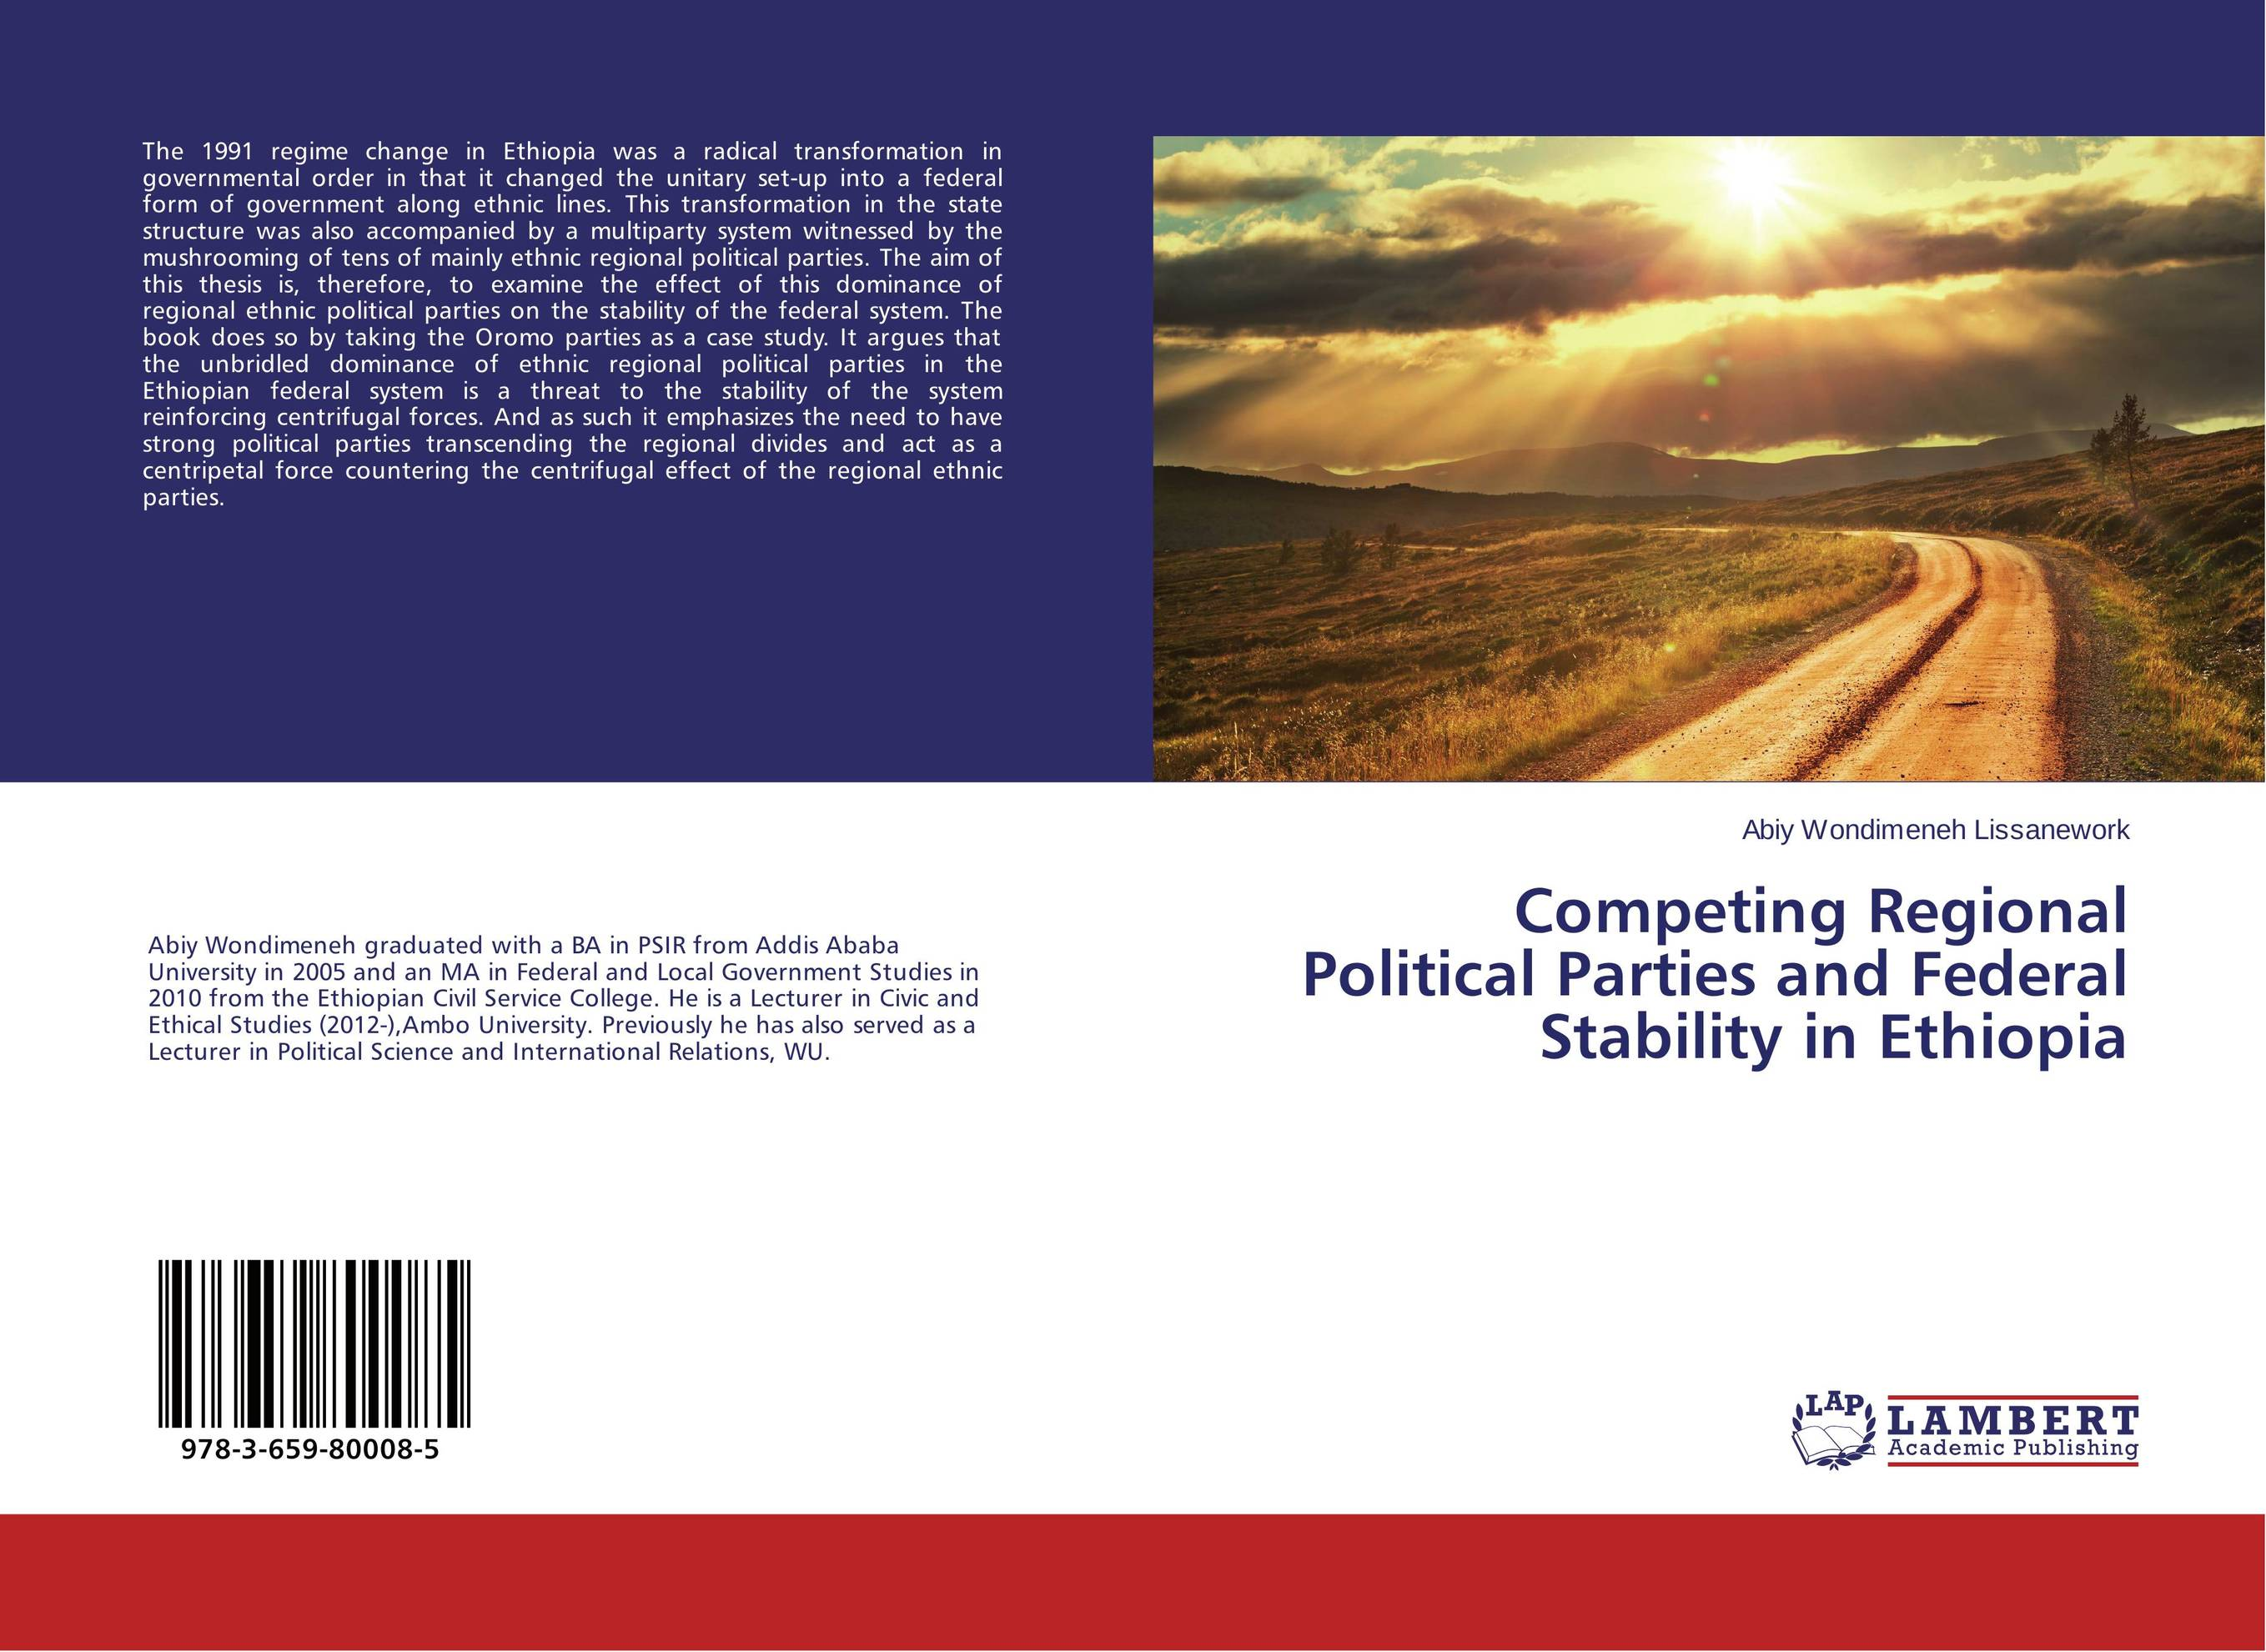 Competing Regional Political Parties and Federal Stability in Ethiopia identity of political parties in albania